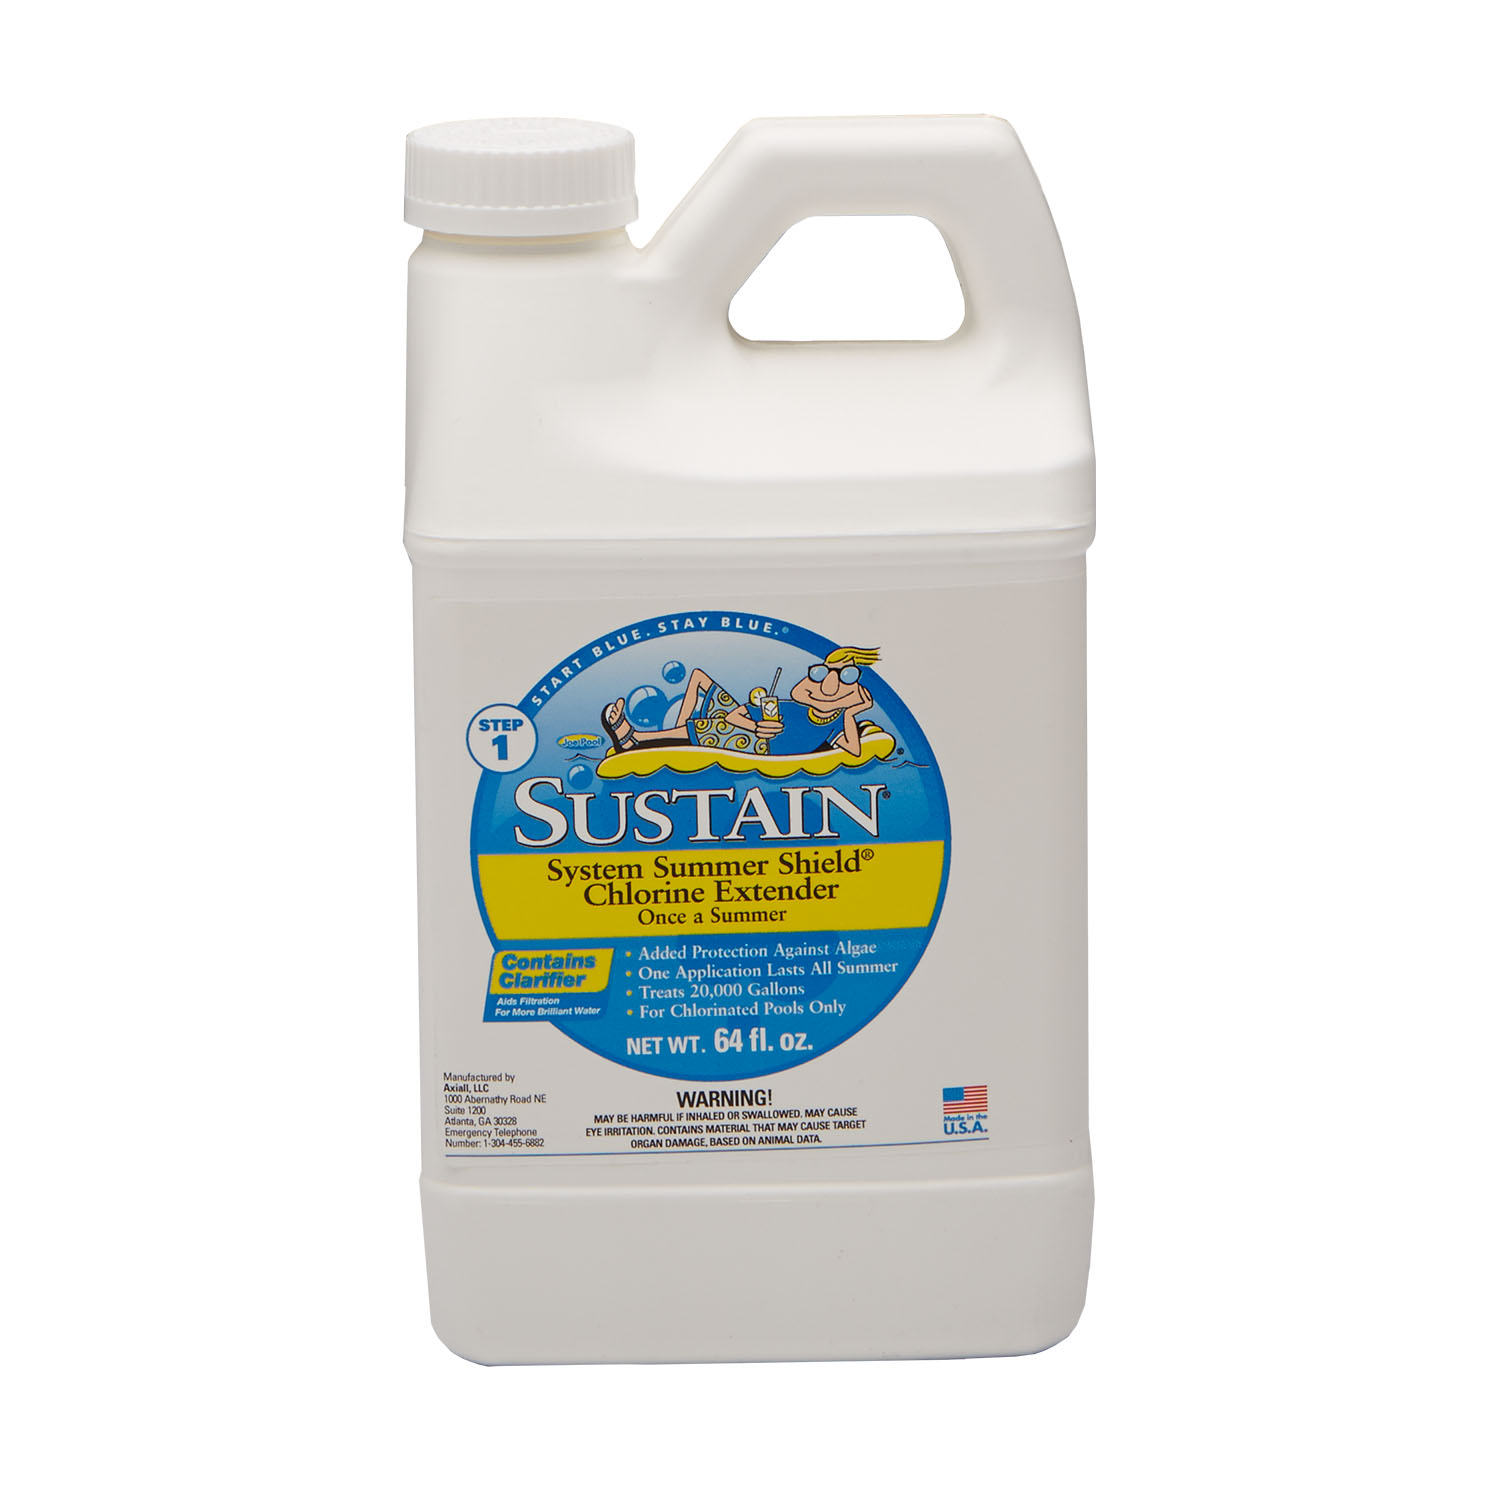 Systain Summer Shield 64 fl oz